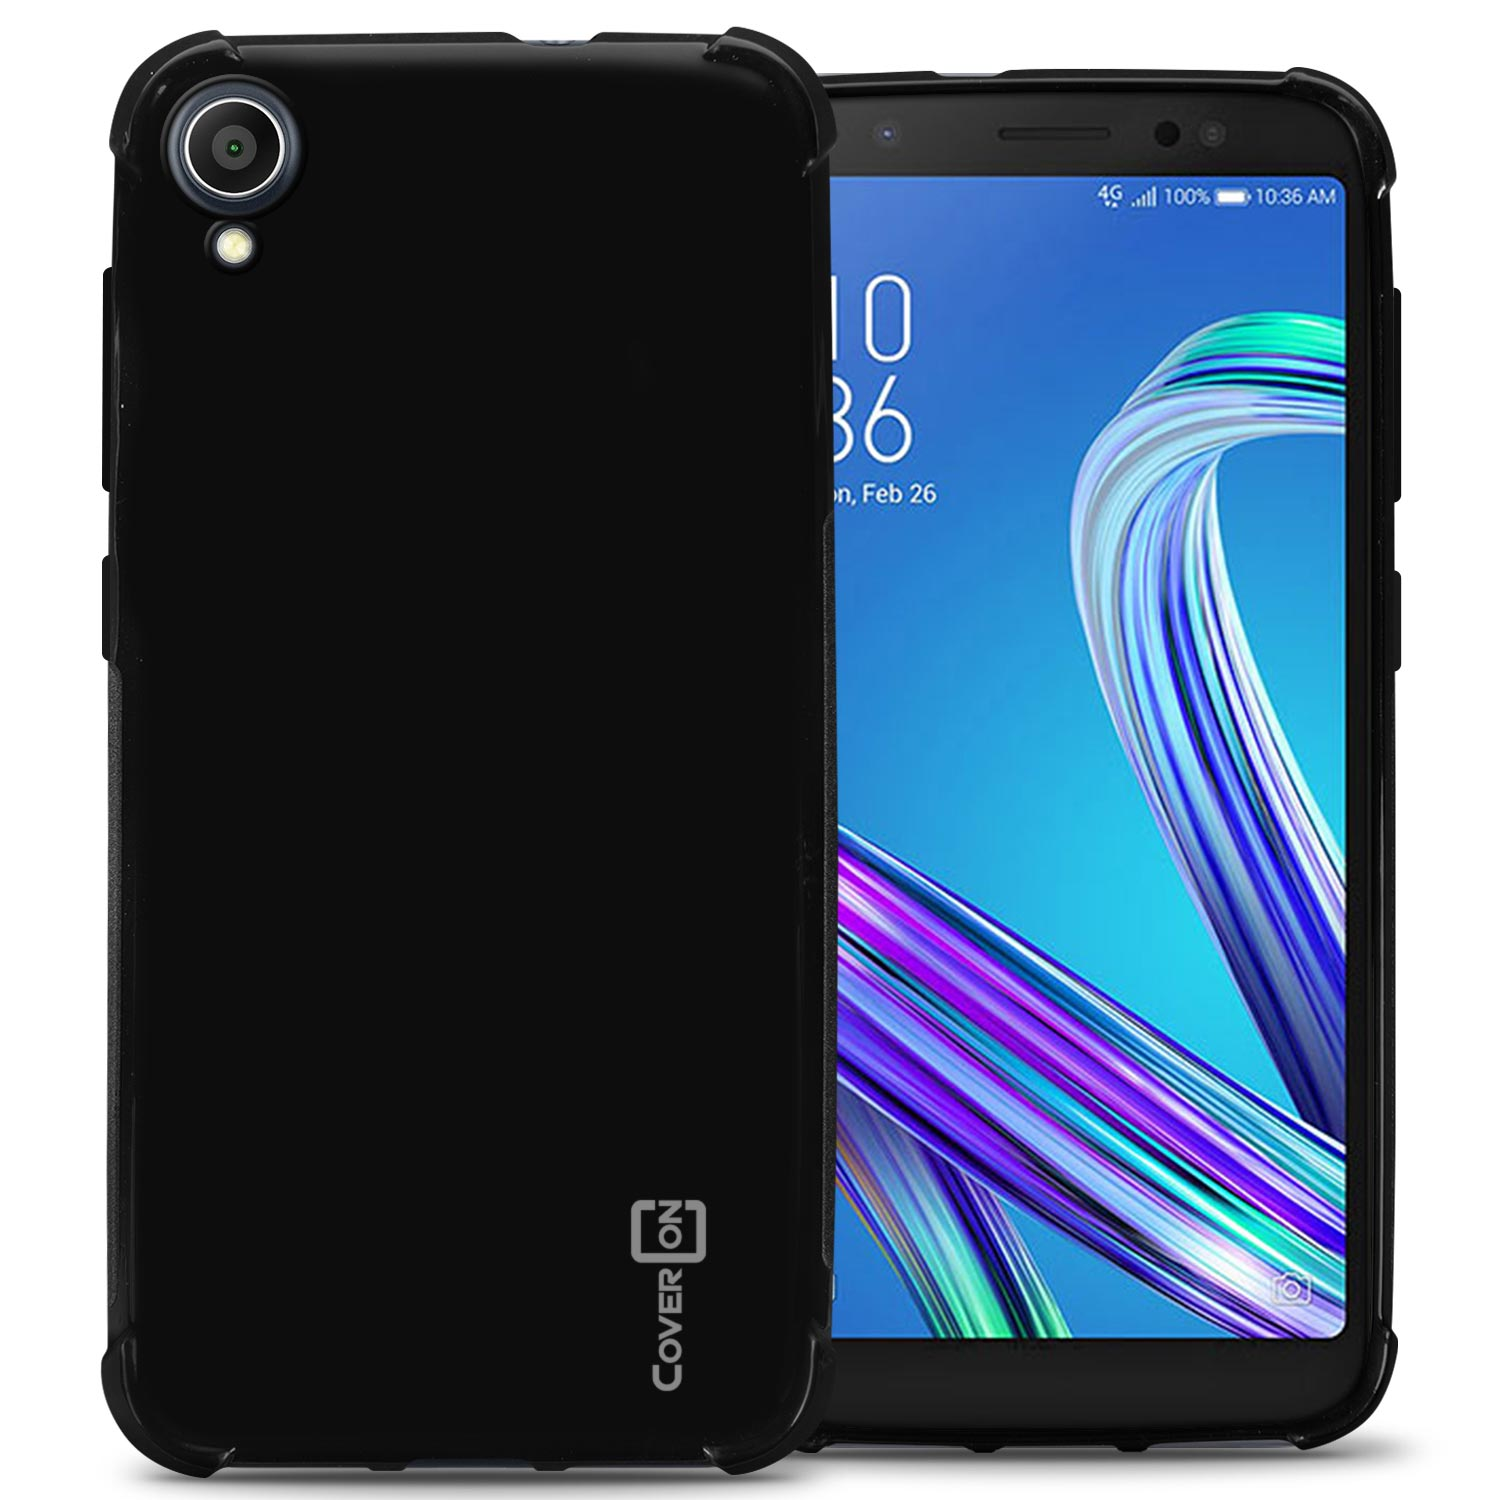 half off c200b 98205 Details about Black Case For Asus Zenfone Live L1 ZA550KL Flexible TPU  Rubber Gel Phone Cover